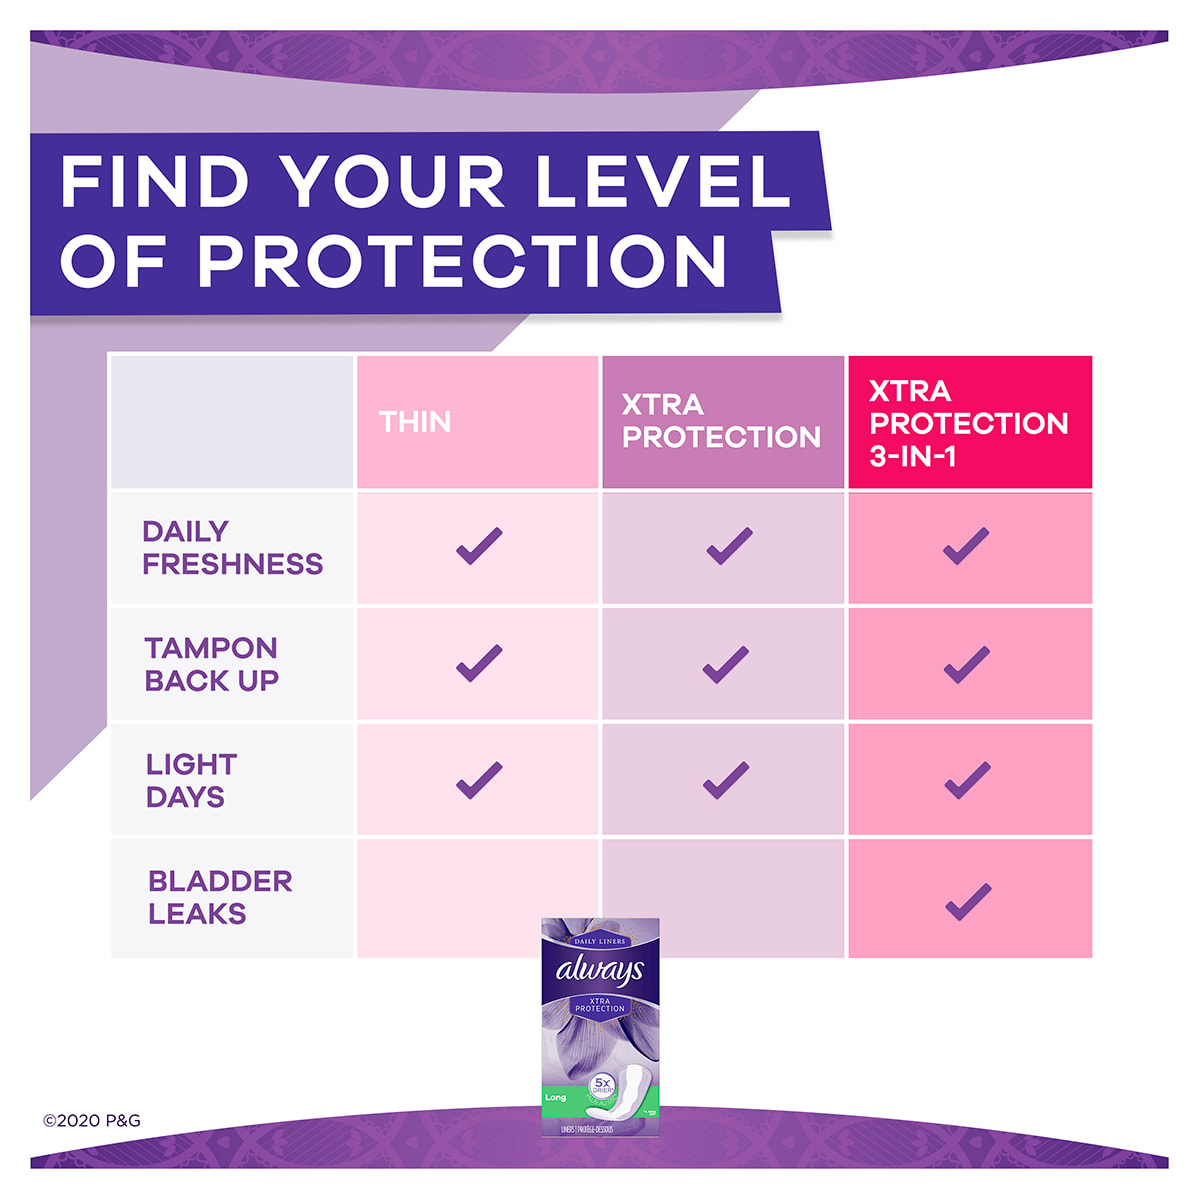 Always Xtra Protect Long Liners Find Your Level of Protection